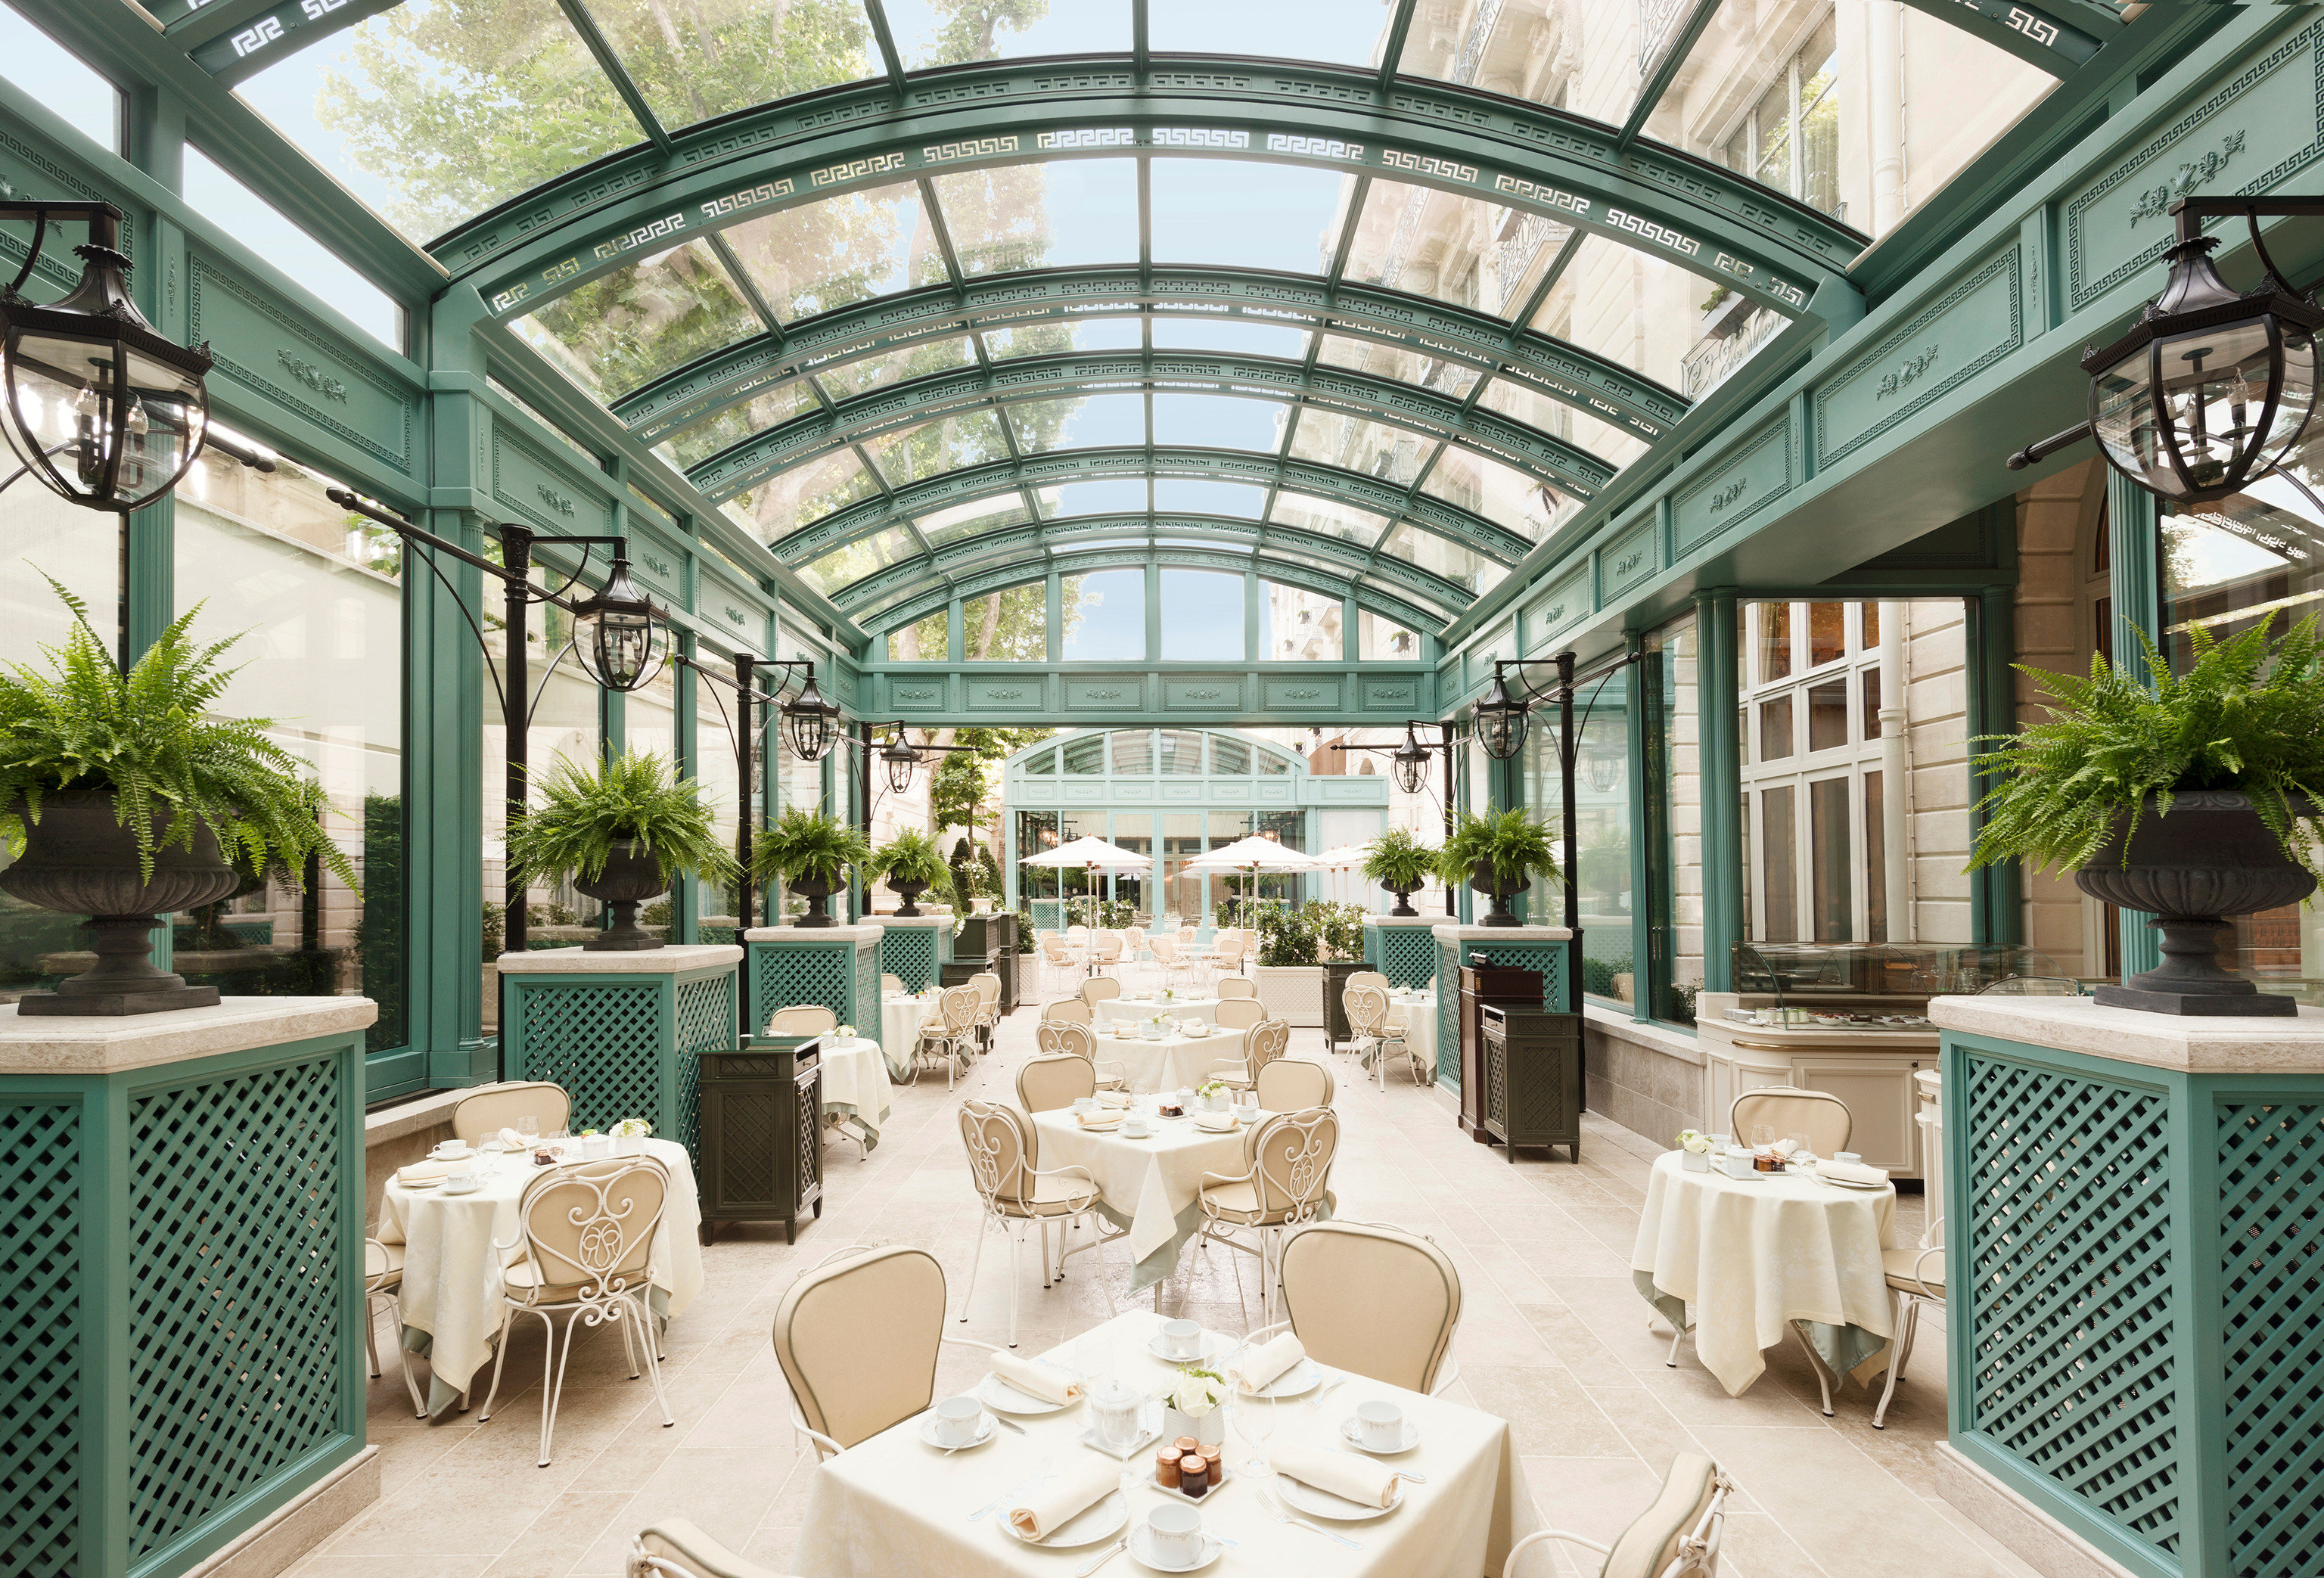 Hotels Romance Trip Ideas restaurant green function hall orangery